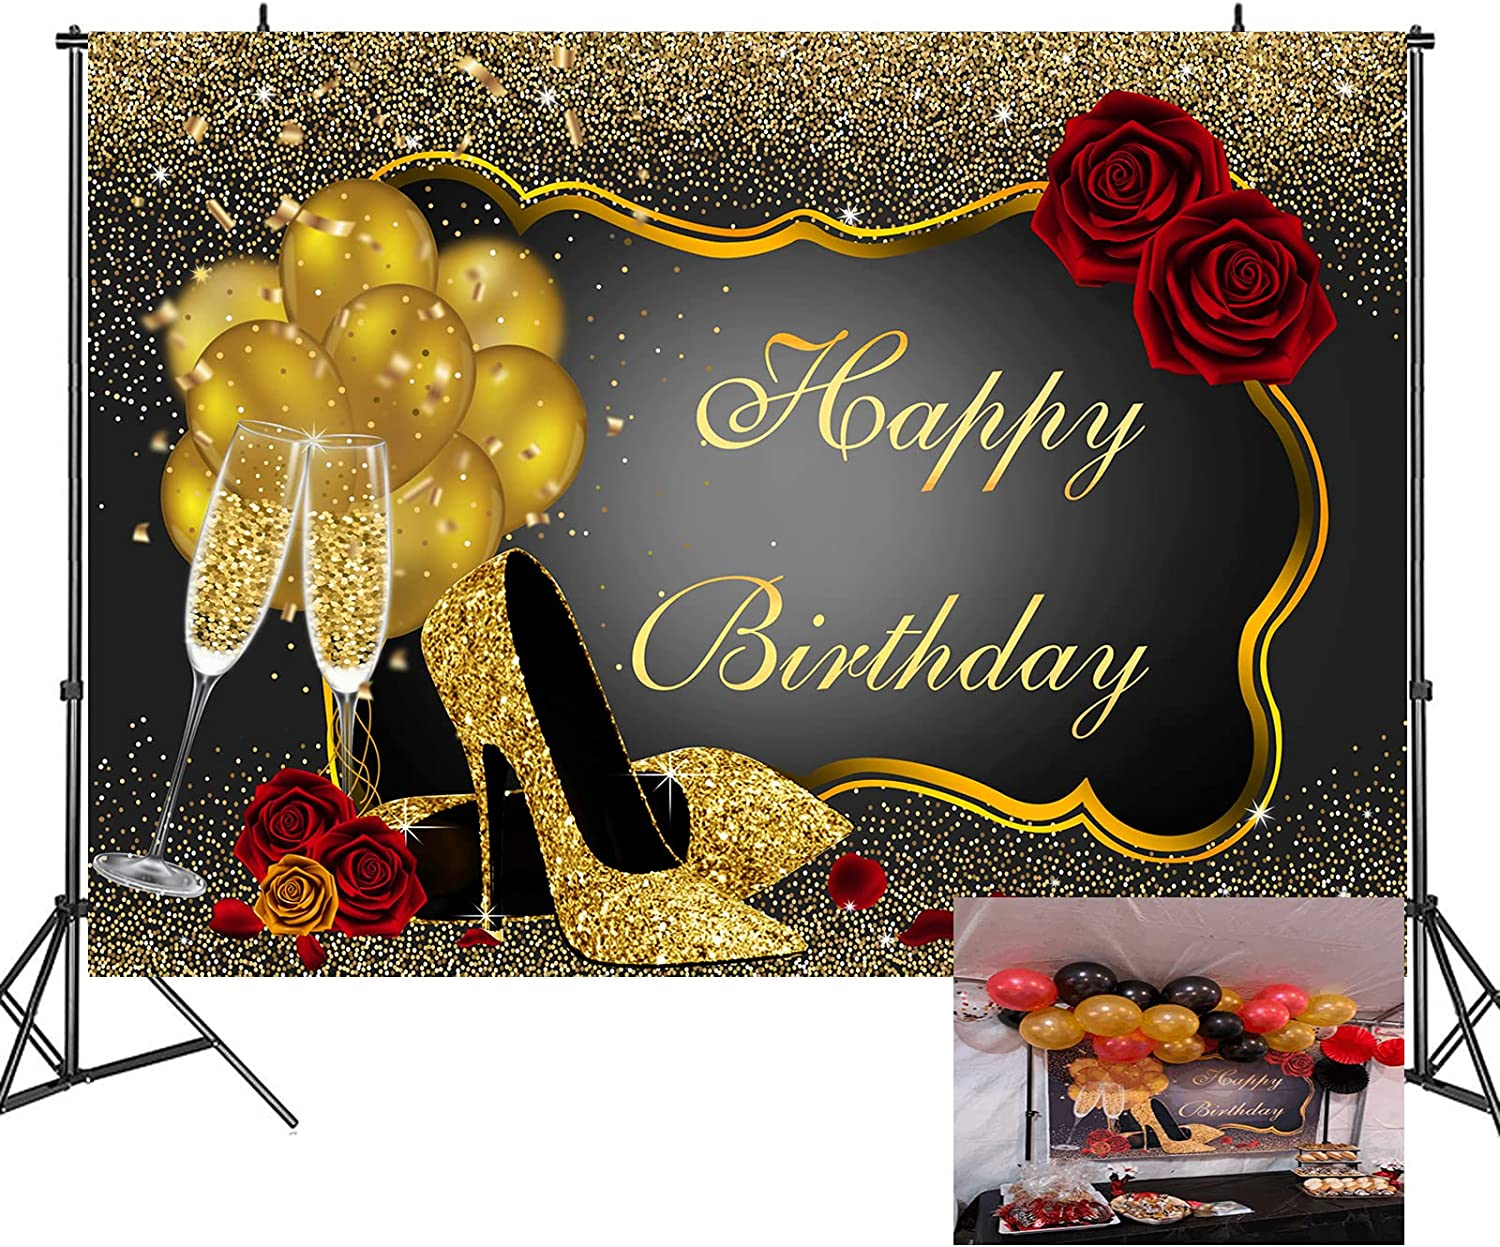 Gold Glitter Happy Birthday Backdrop Sparkle Sequin High Heels Champagne Glass Photography Background for Adult Women Red Rose Balloons Birthday Party Decorations,Banner Photo Booth Backdrops 7x5ft